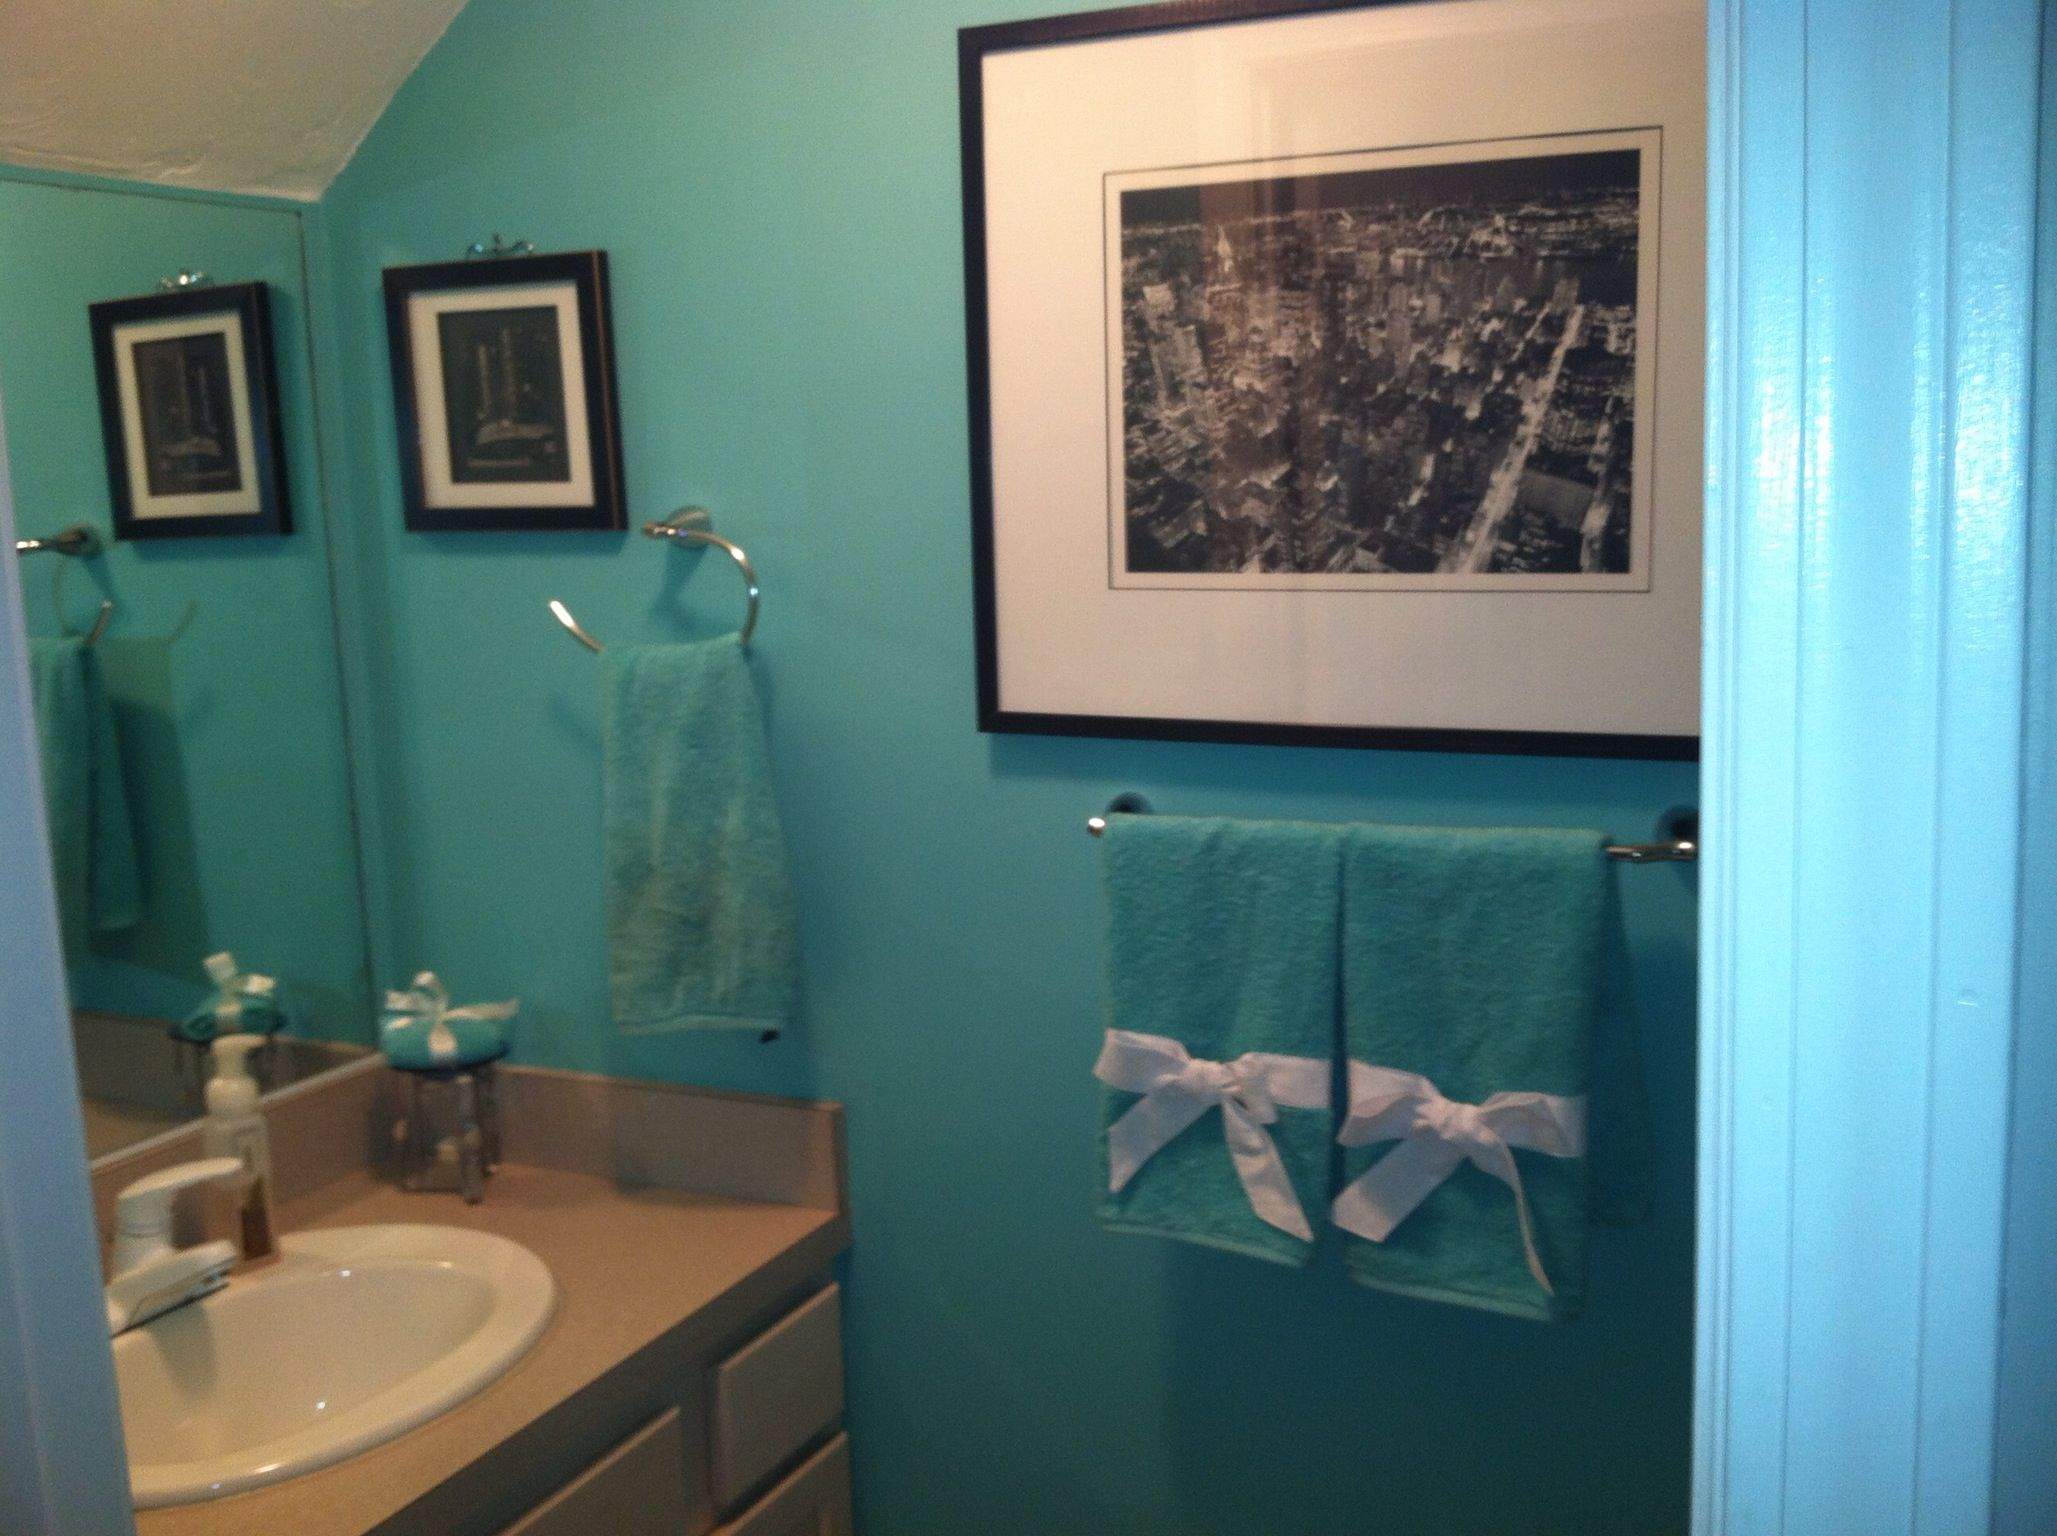 Cute decor towel idea for tiffany themed bathroom for for Space themed bathroom accessories